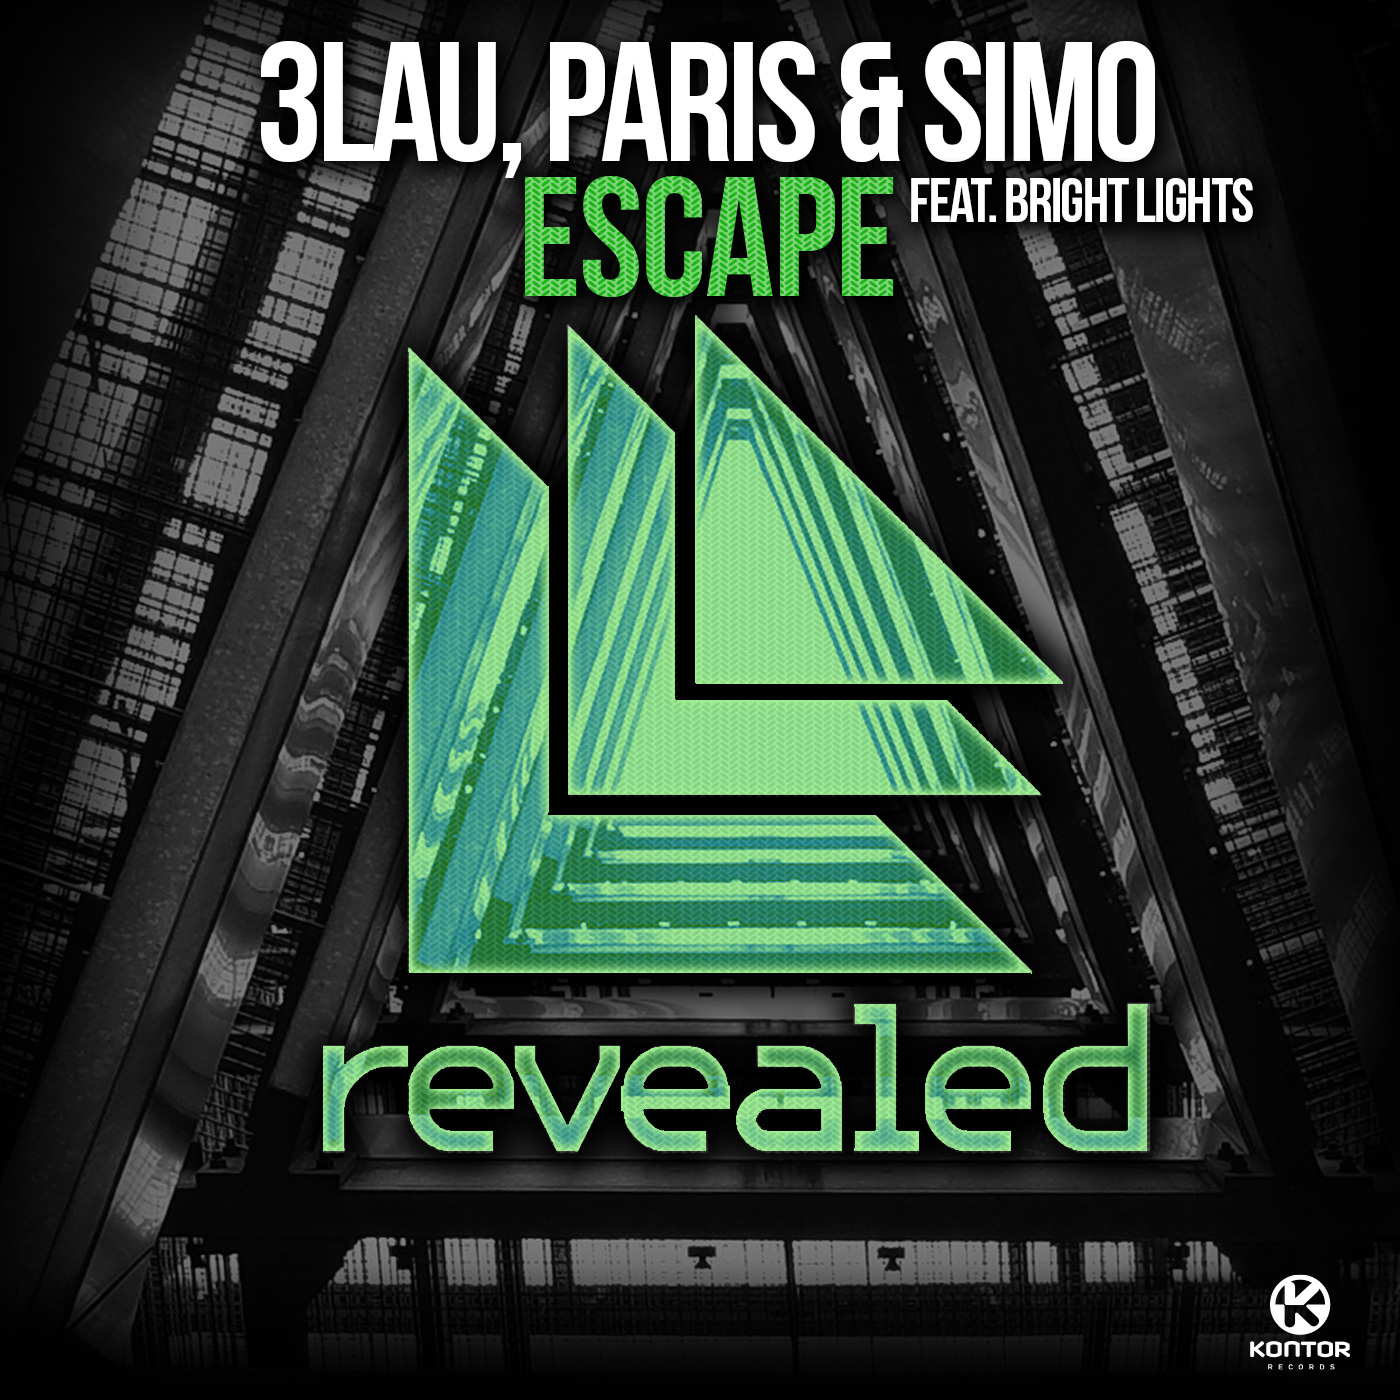 3LAU, PARIS & SIMO FEAT. BRIGHT LIGHTS - Escape (Revealed/Kontor/Kontor New Media)